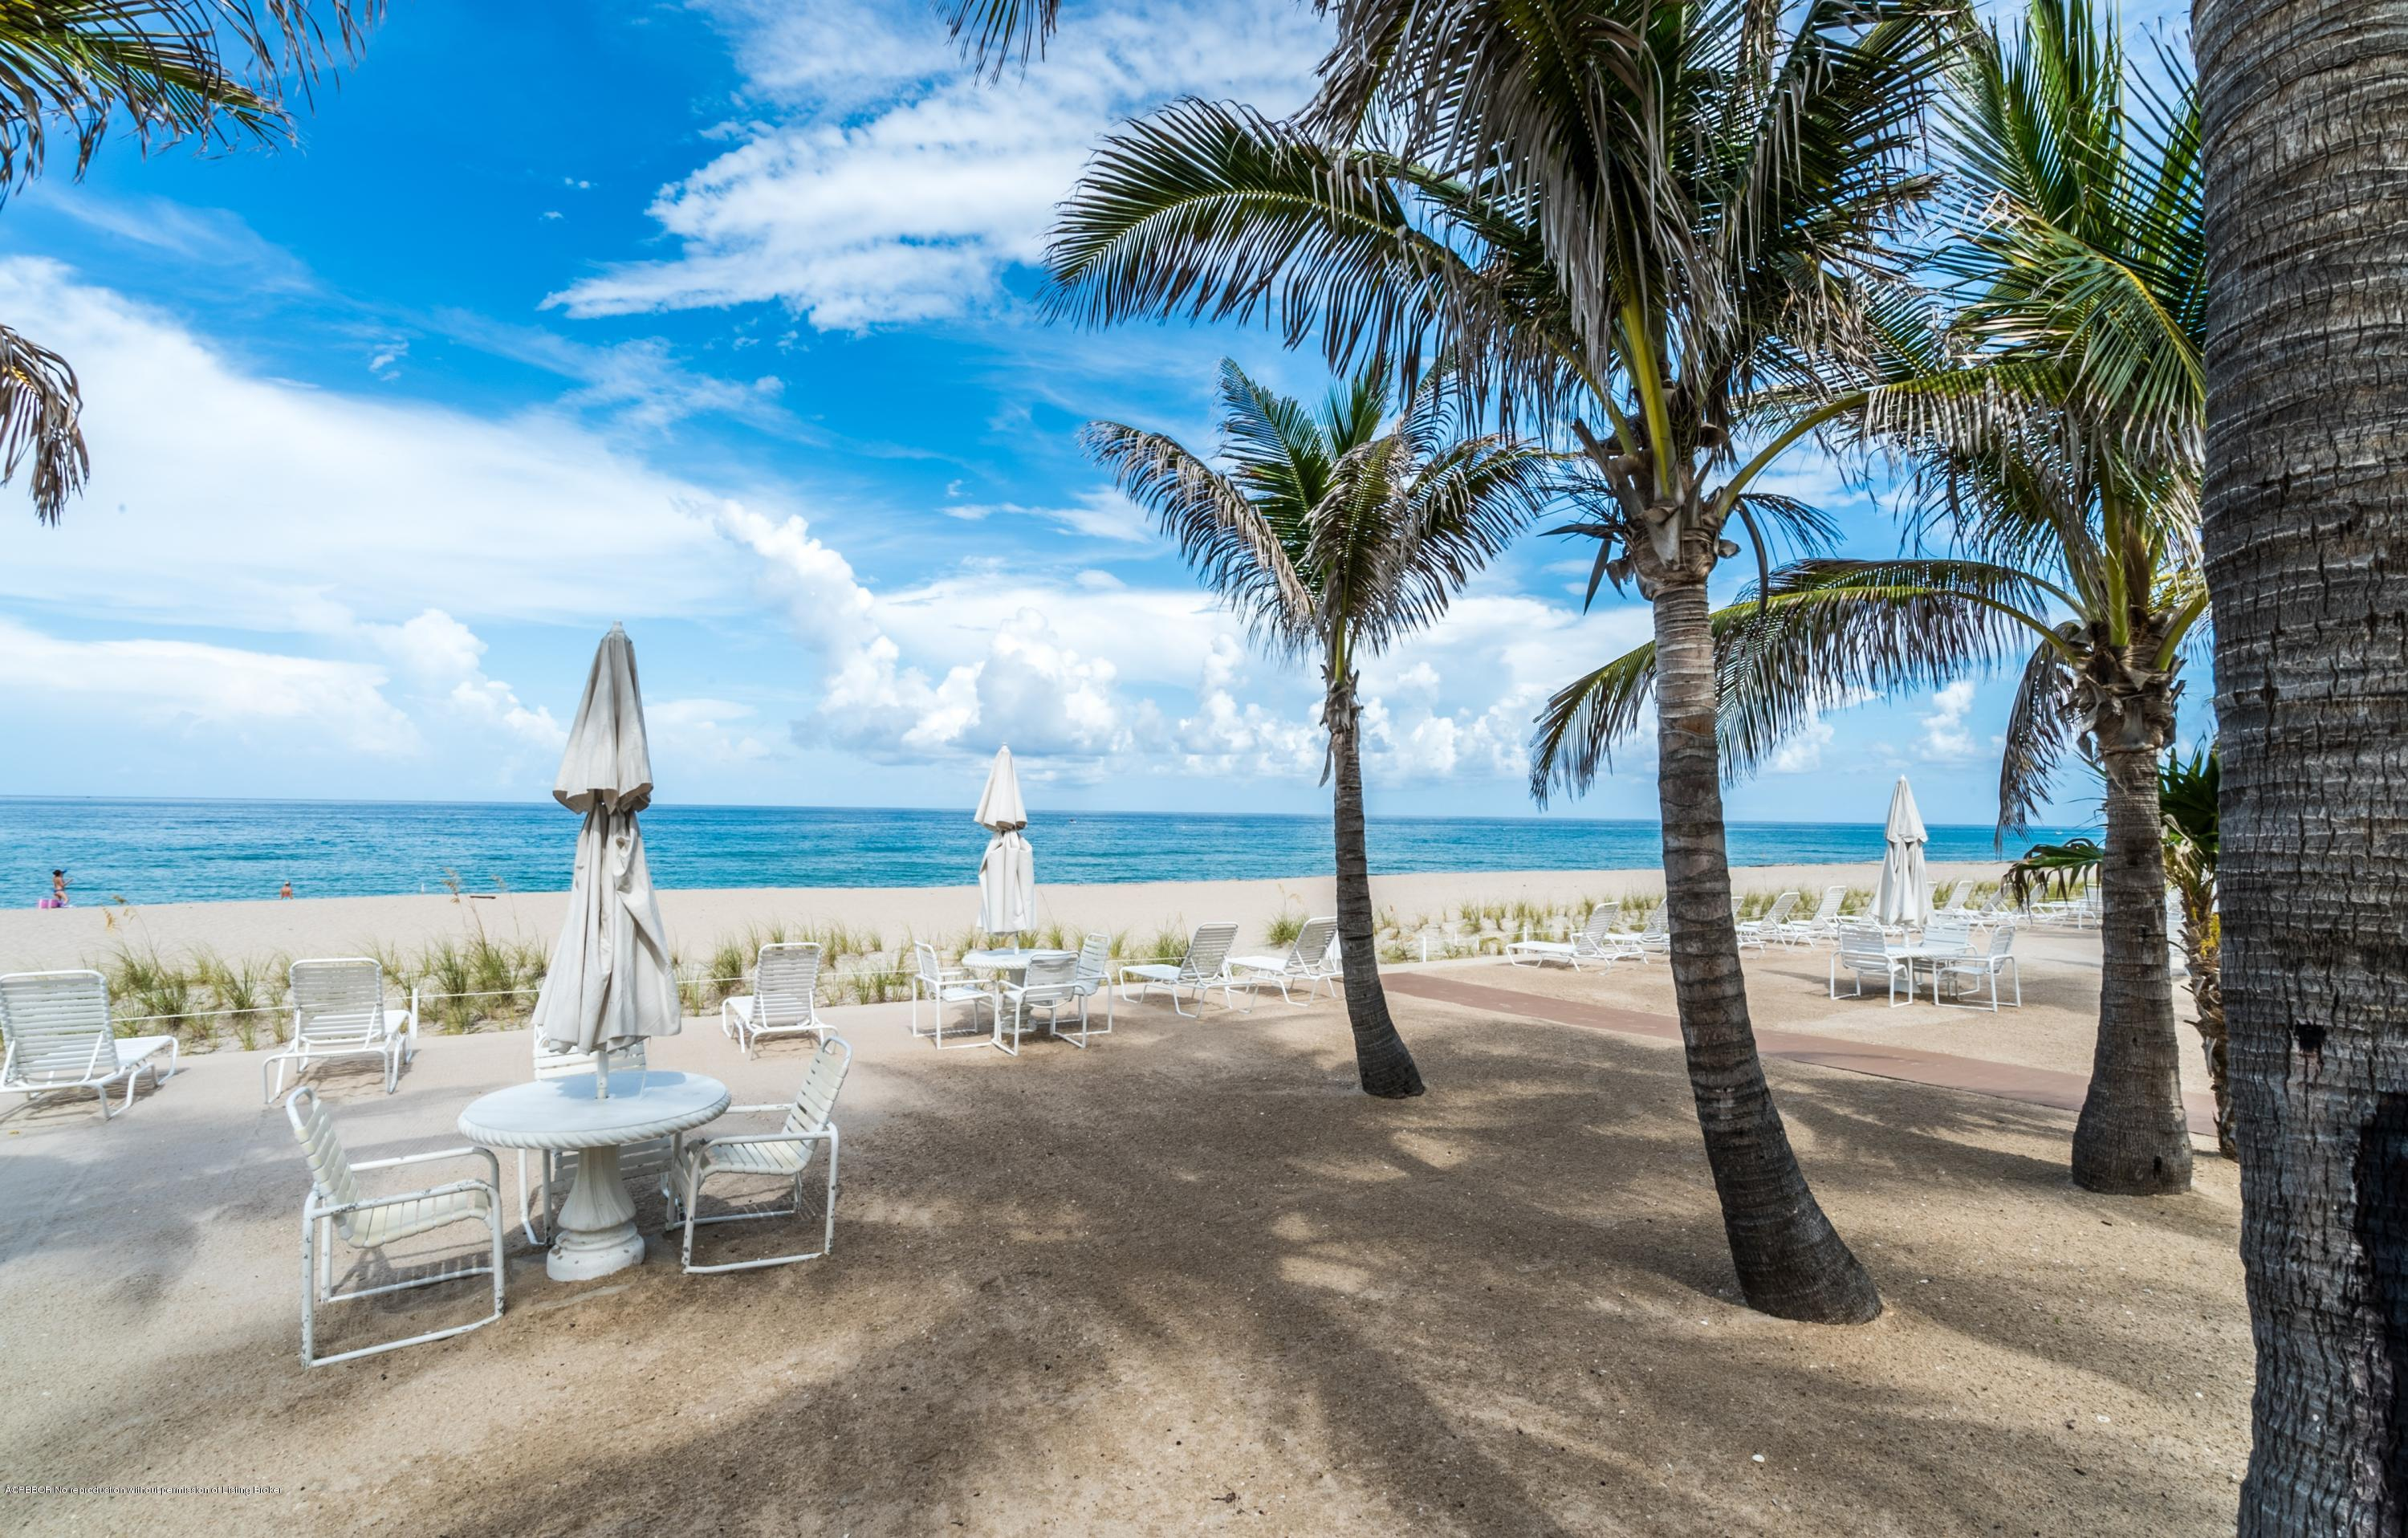 170 N Ocean Boulevard, 210 - Palm Beach, Florida